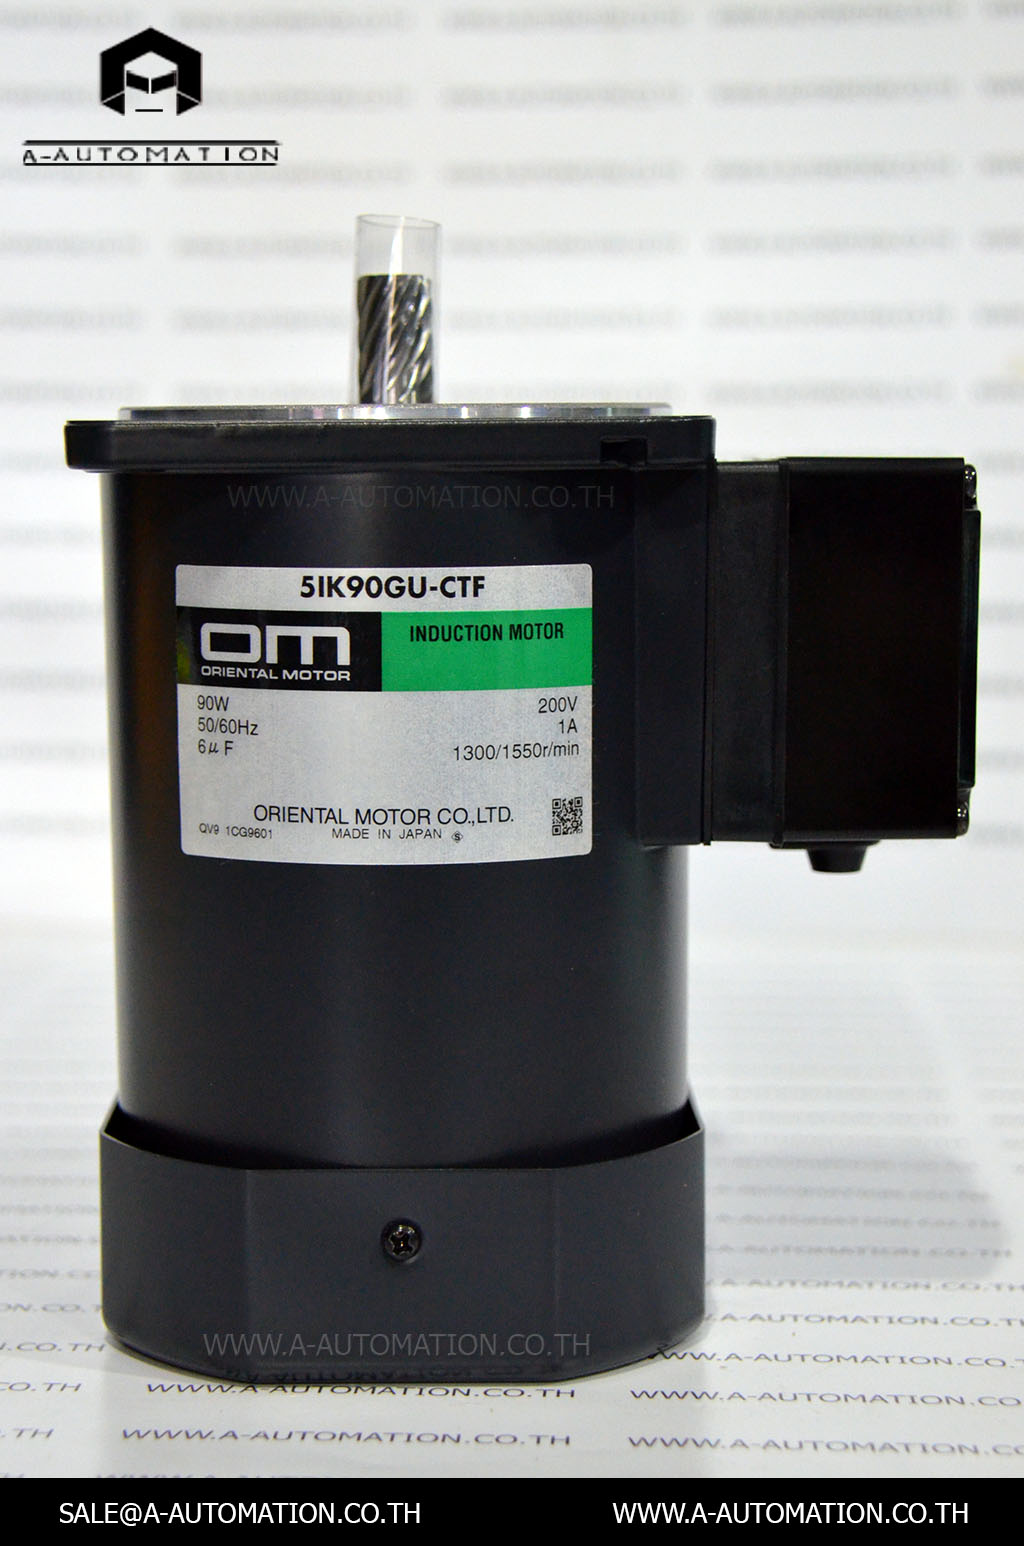 INDUCTION MOTOR MODEL:5IK90GU-CTF [ORIENTAL MOTOR]